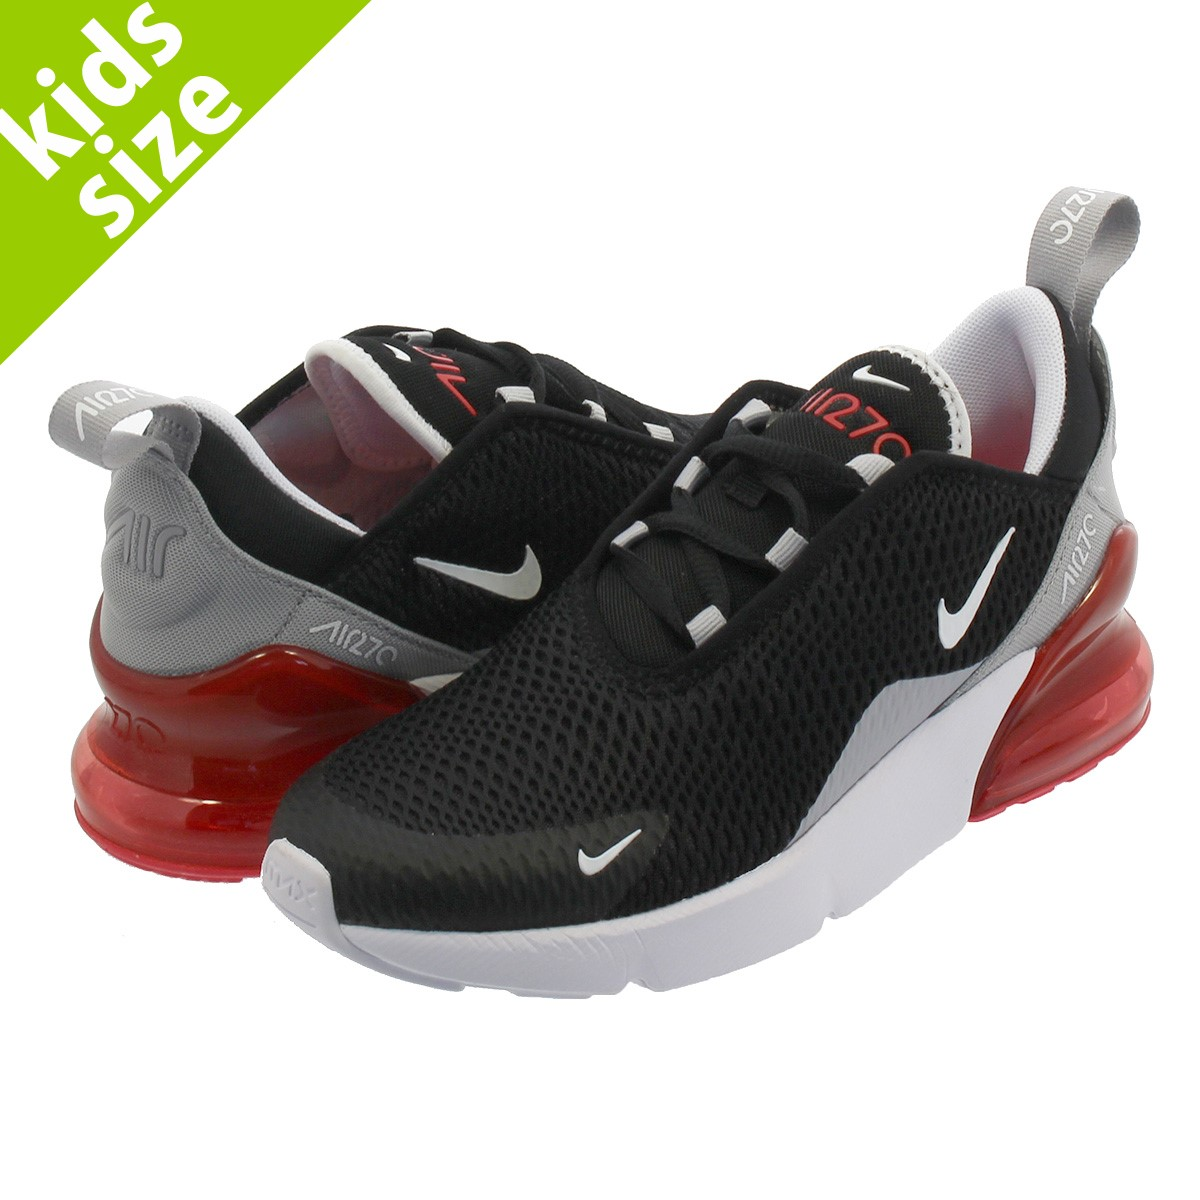 huge selection of 55a3d 30f72 NIKE AIR MAX 270 PS Kie Ney AMAX 270 PS BLACK WHITE EMBER GLOW WOLF GREY  ao2372-013